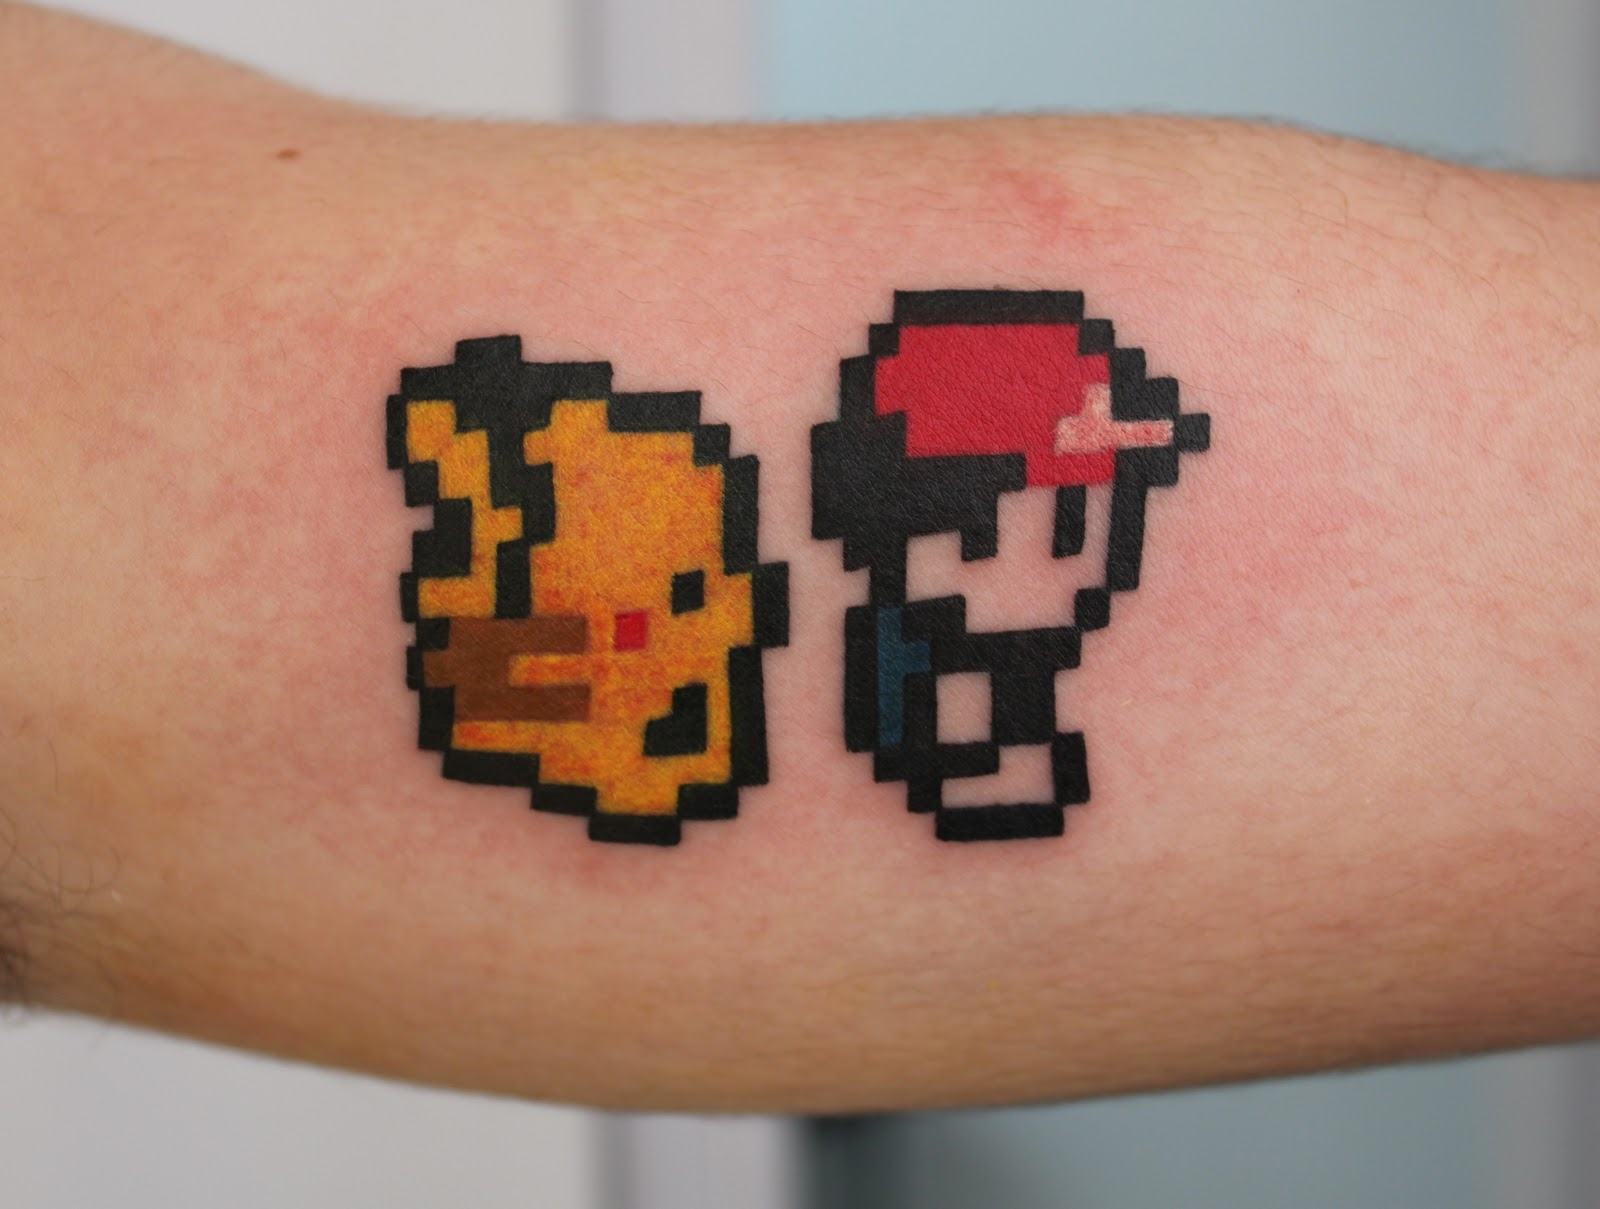 19 best 8bit tattoos images on Pinterest